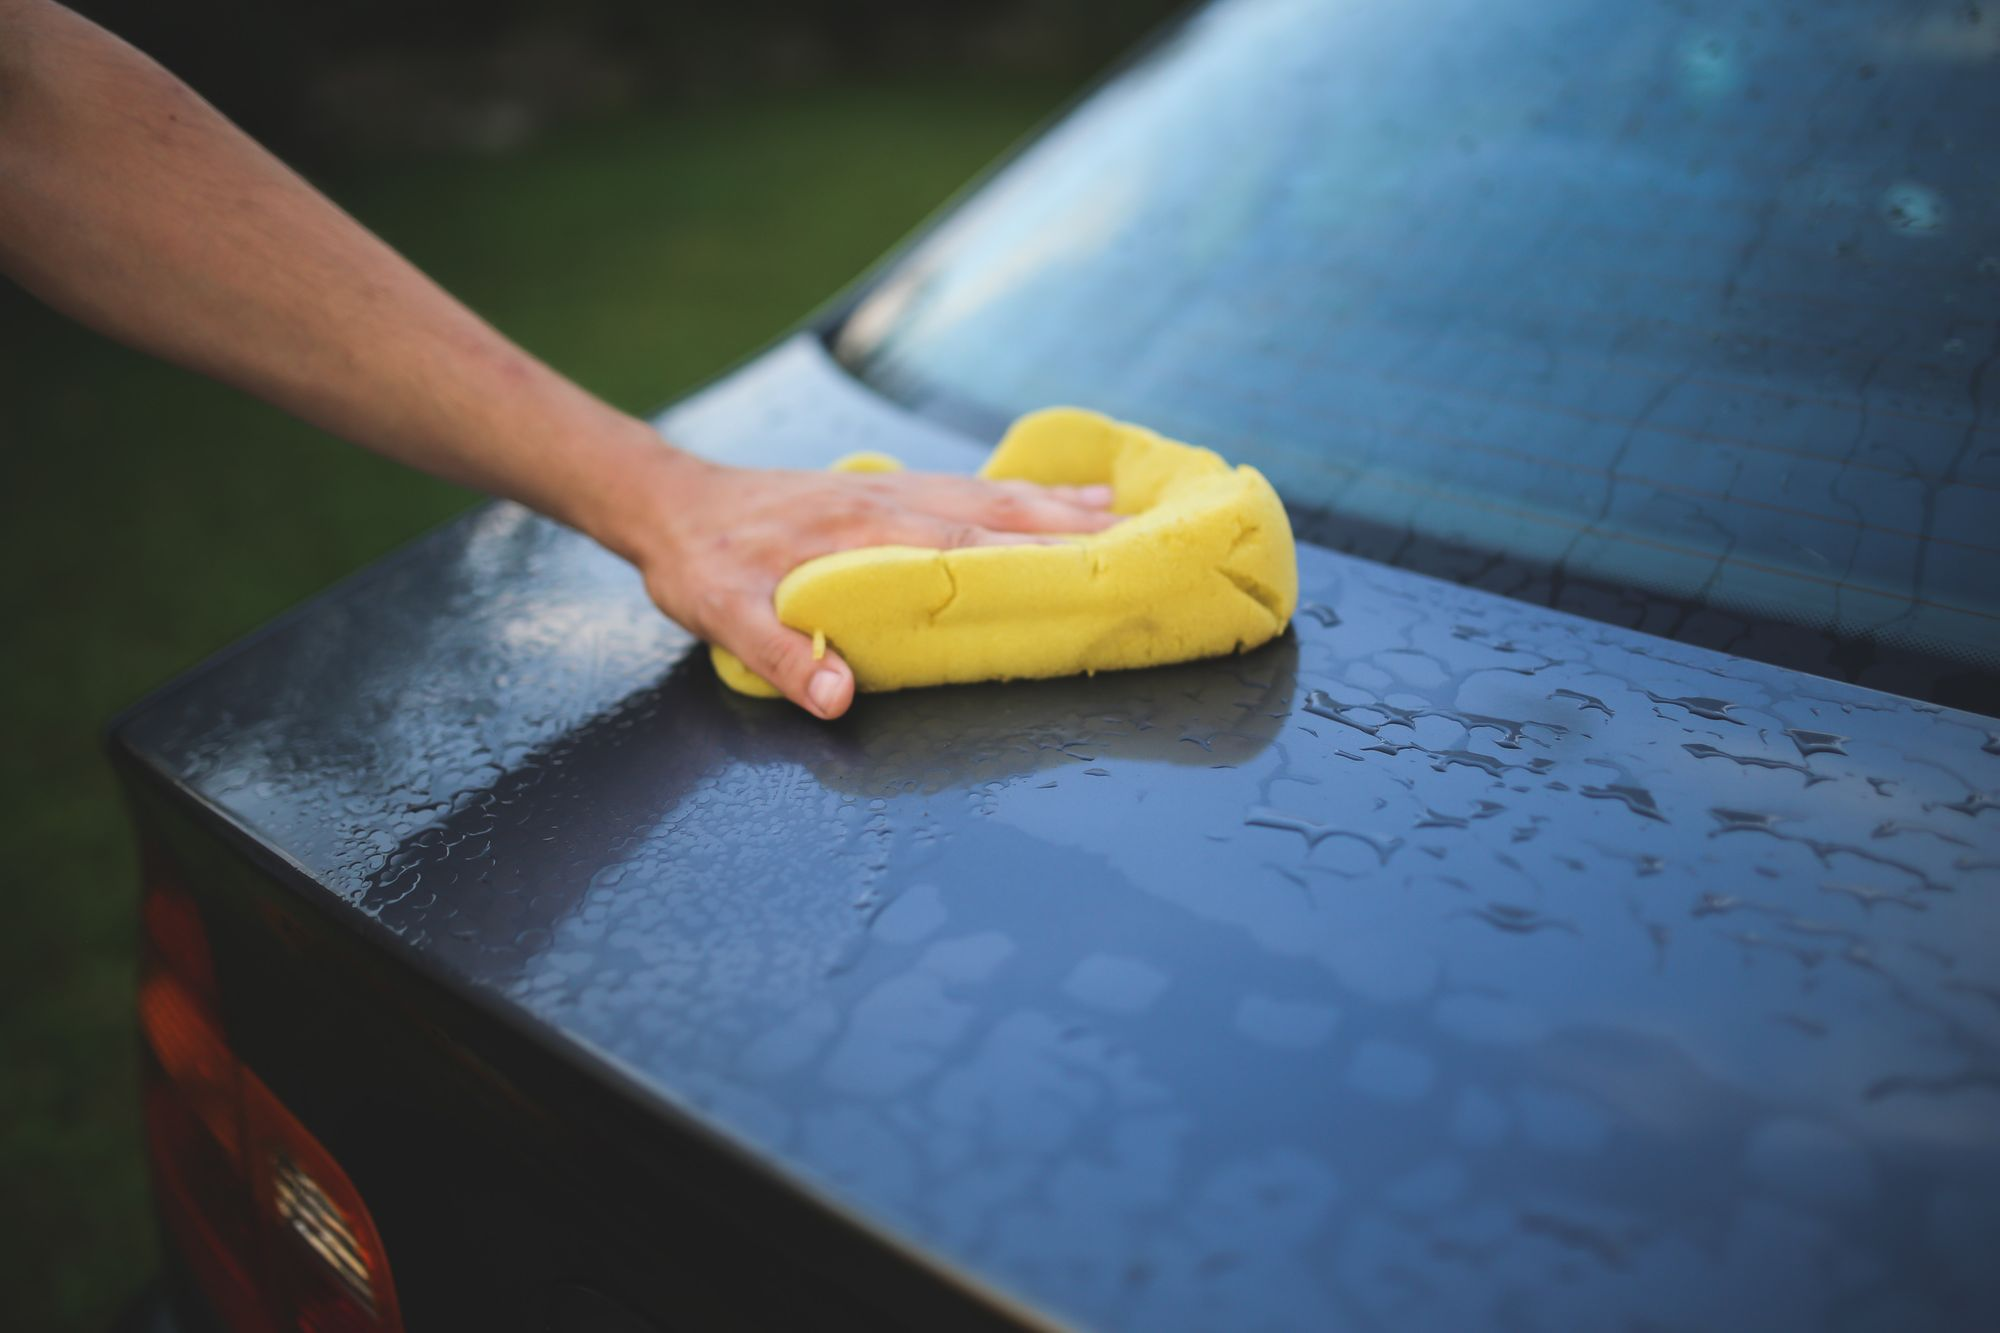 Build an on-demand car wash app with Smartcar